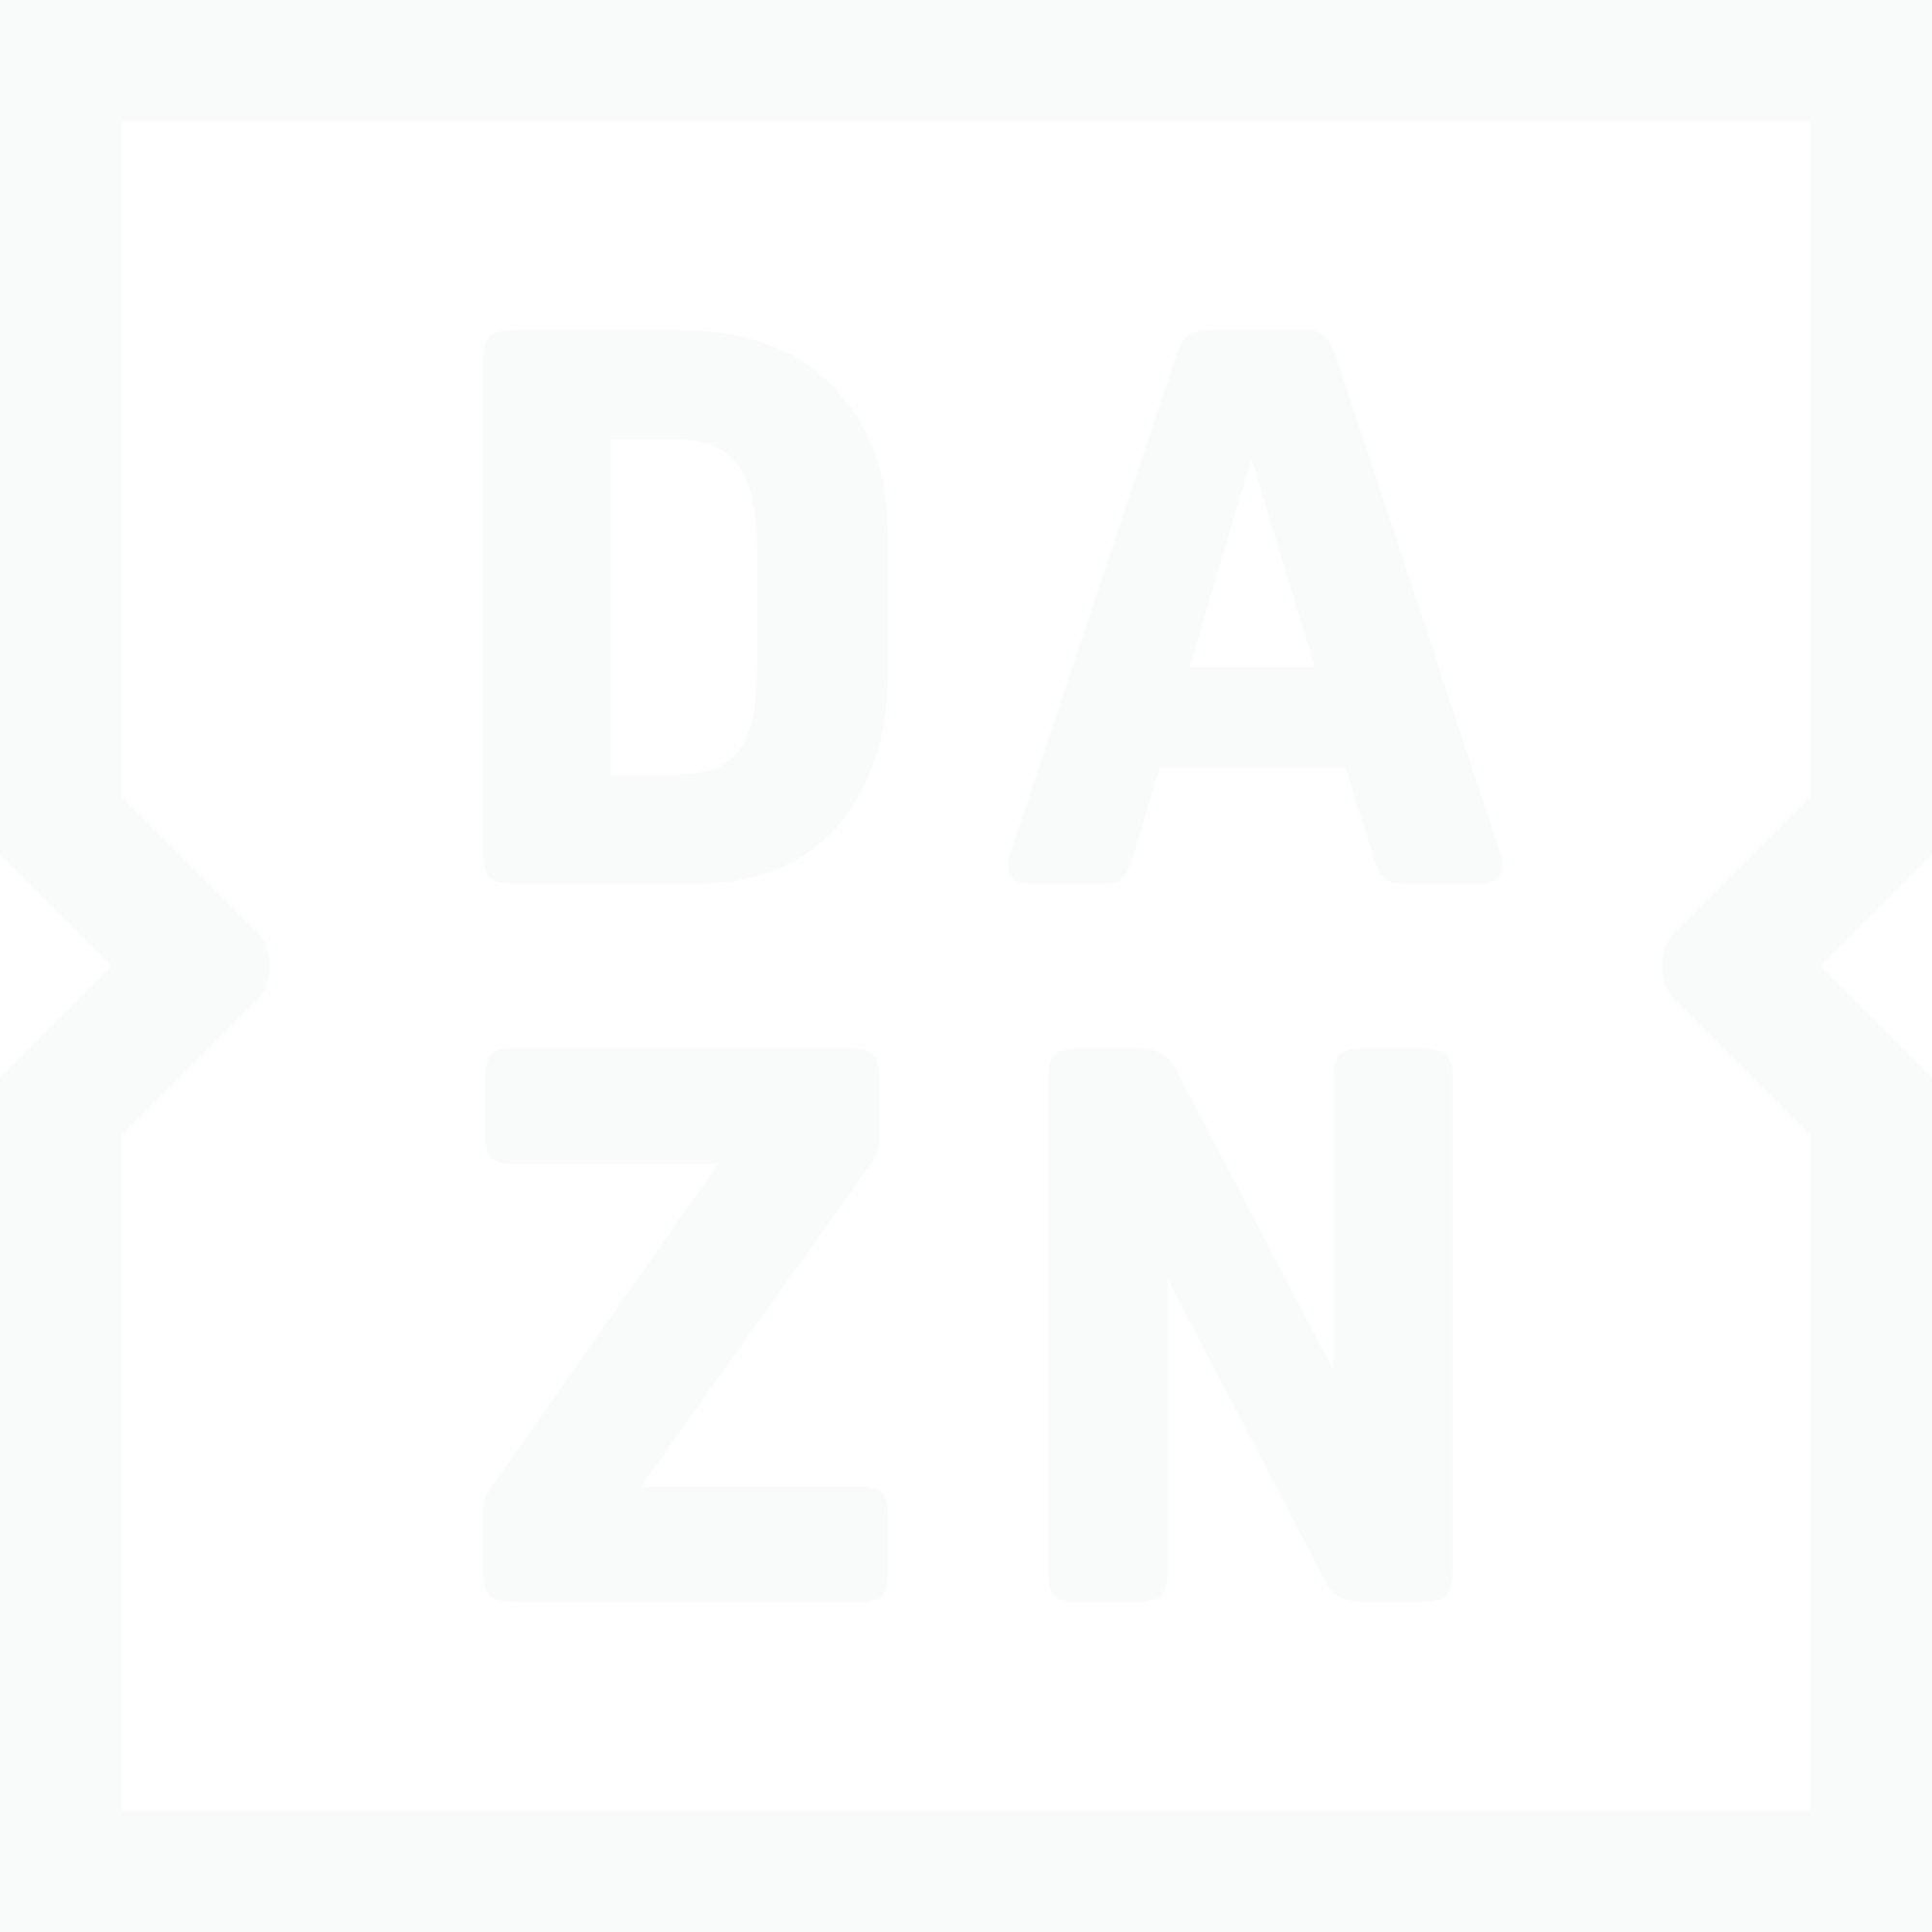 DAZN partnership logo